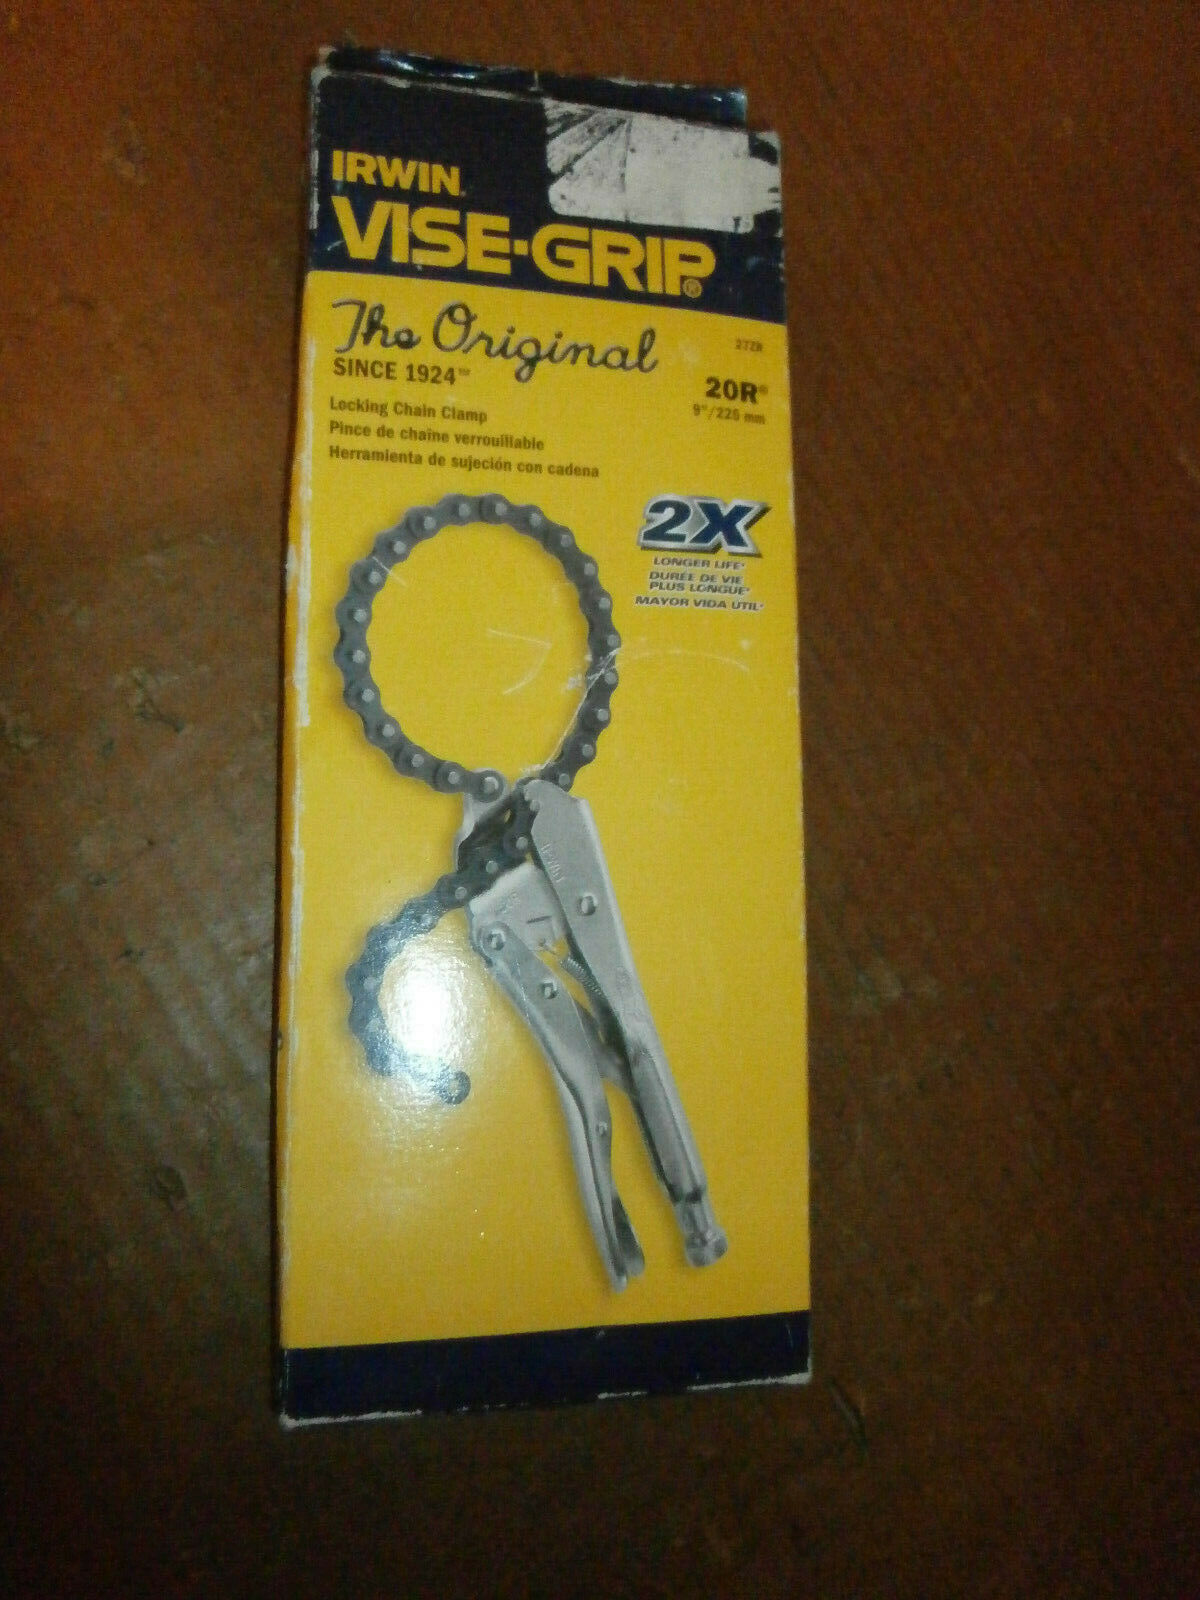 NEW IRWIN VISE GRIP 20R LOCKING CHAIN CLAMP PLIERS IN BOX